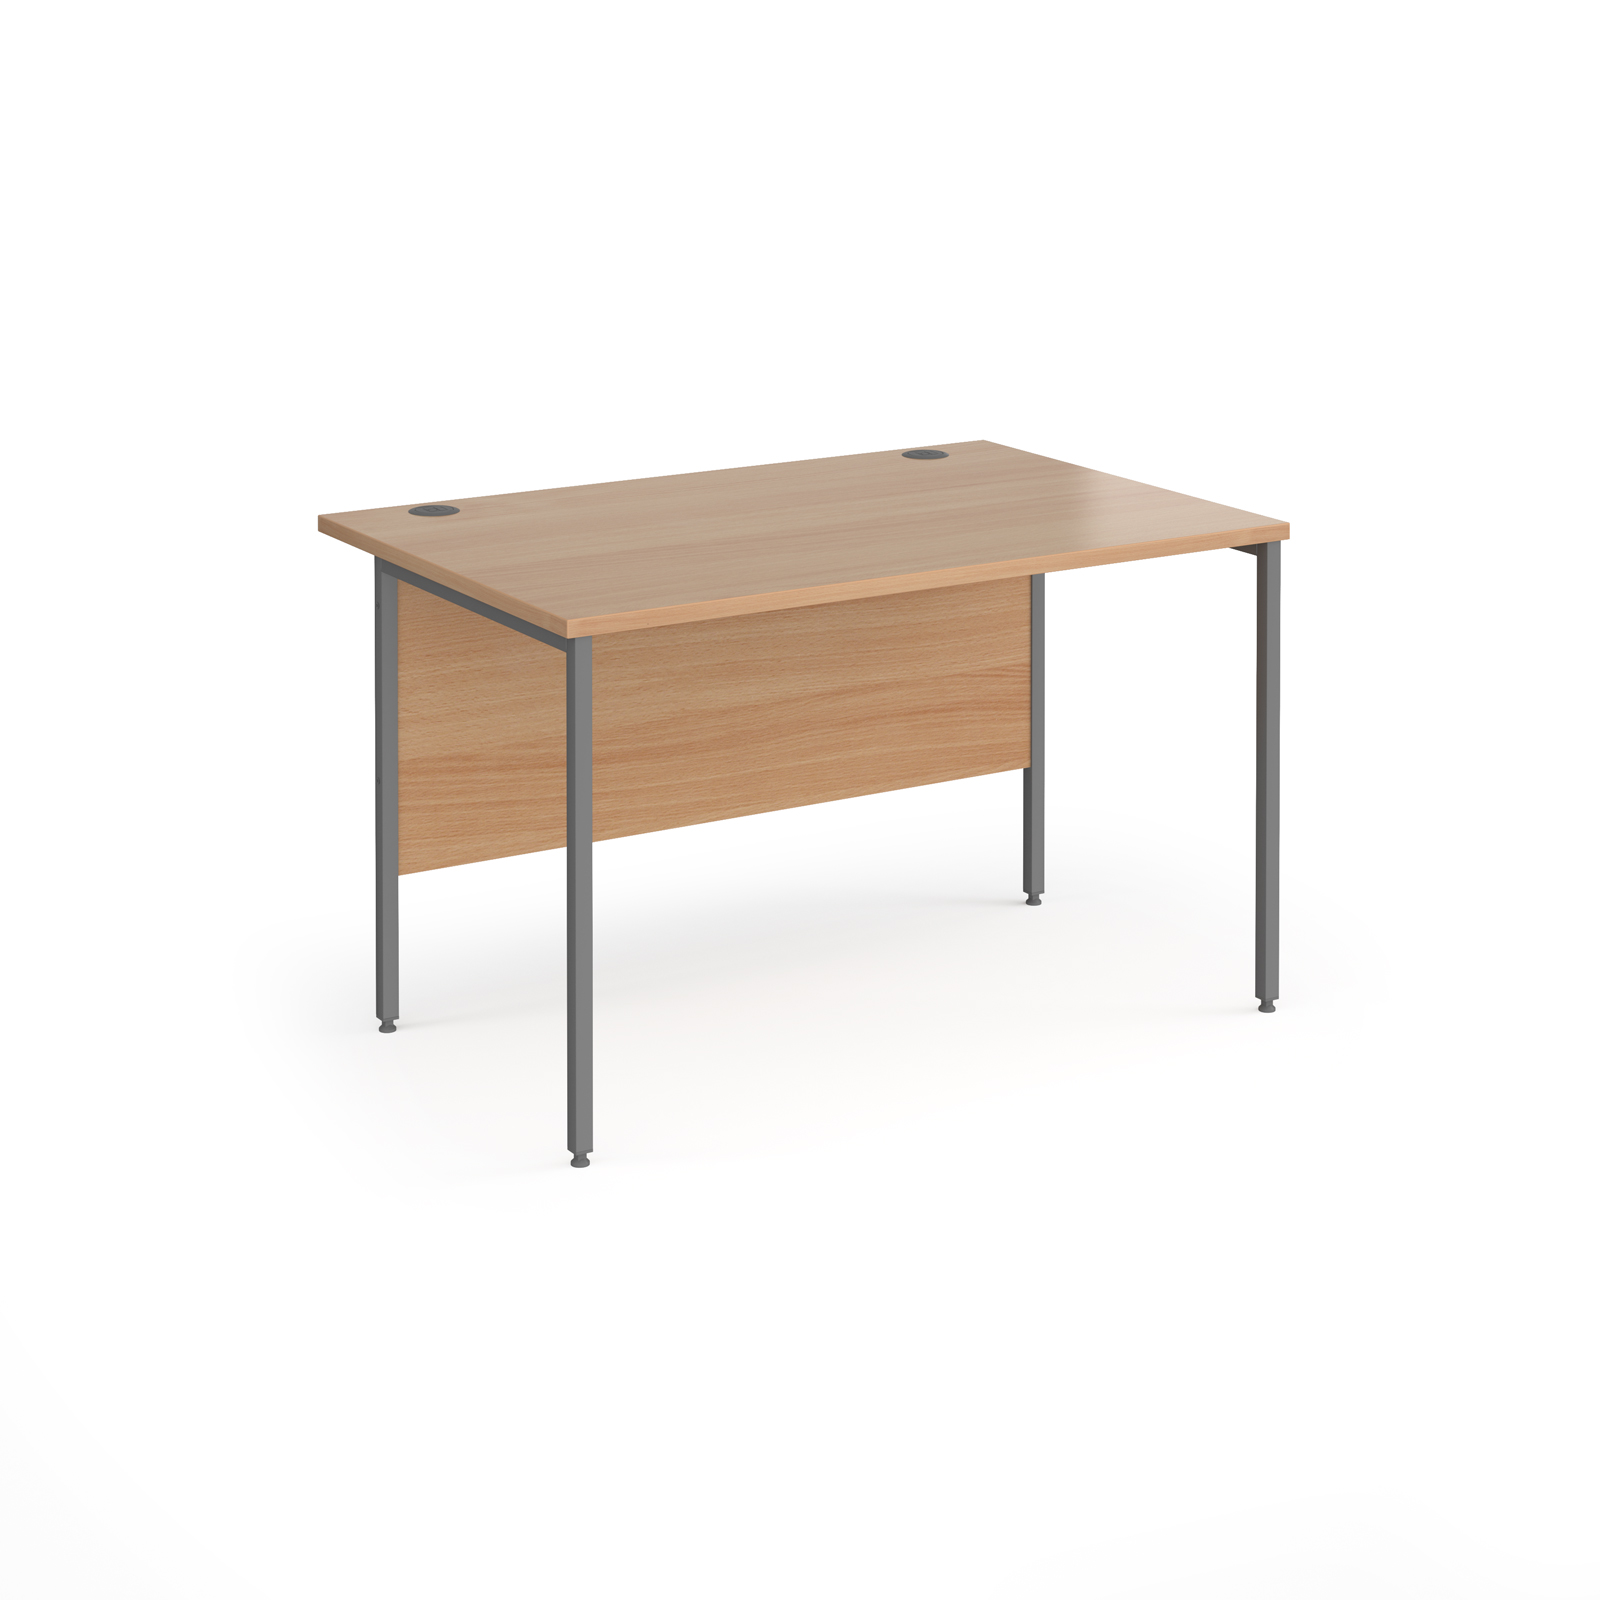 Contract 25 straight desk with graphite H-Frame leg 1200mm x 800mm - beech top